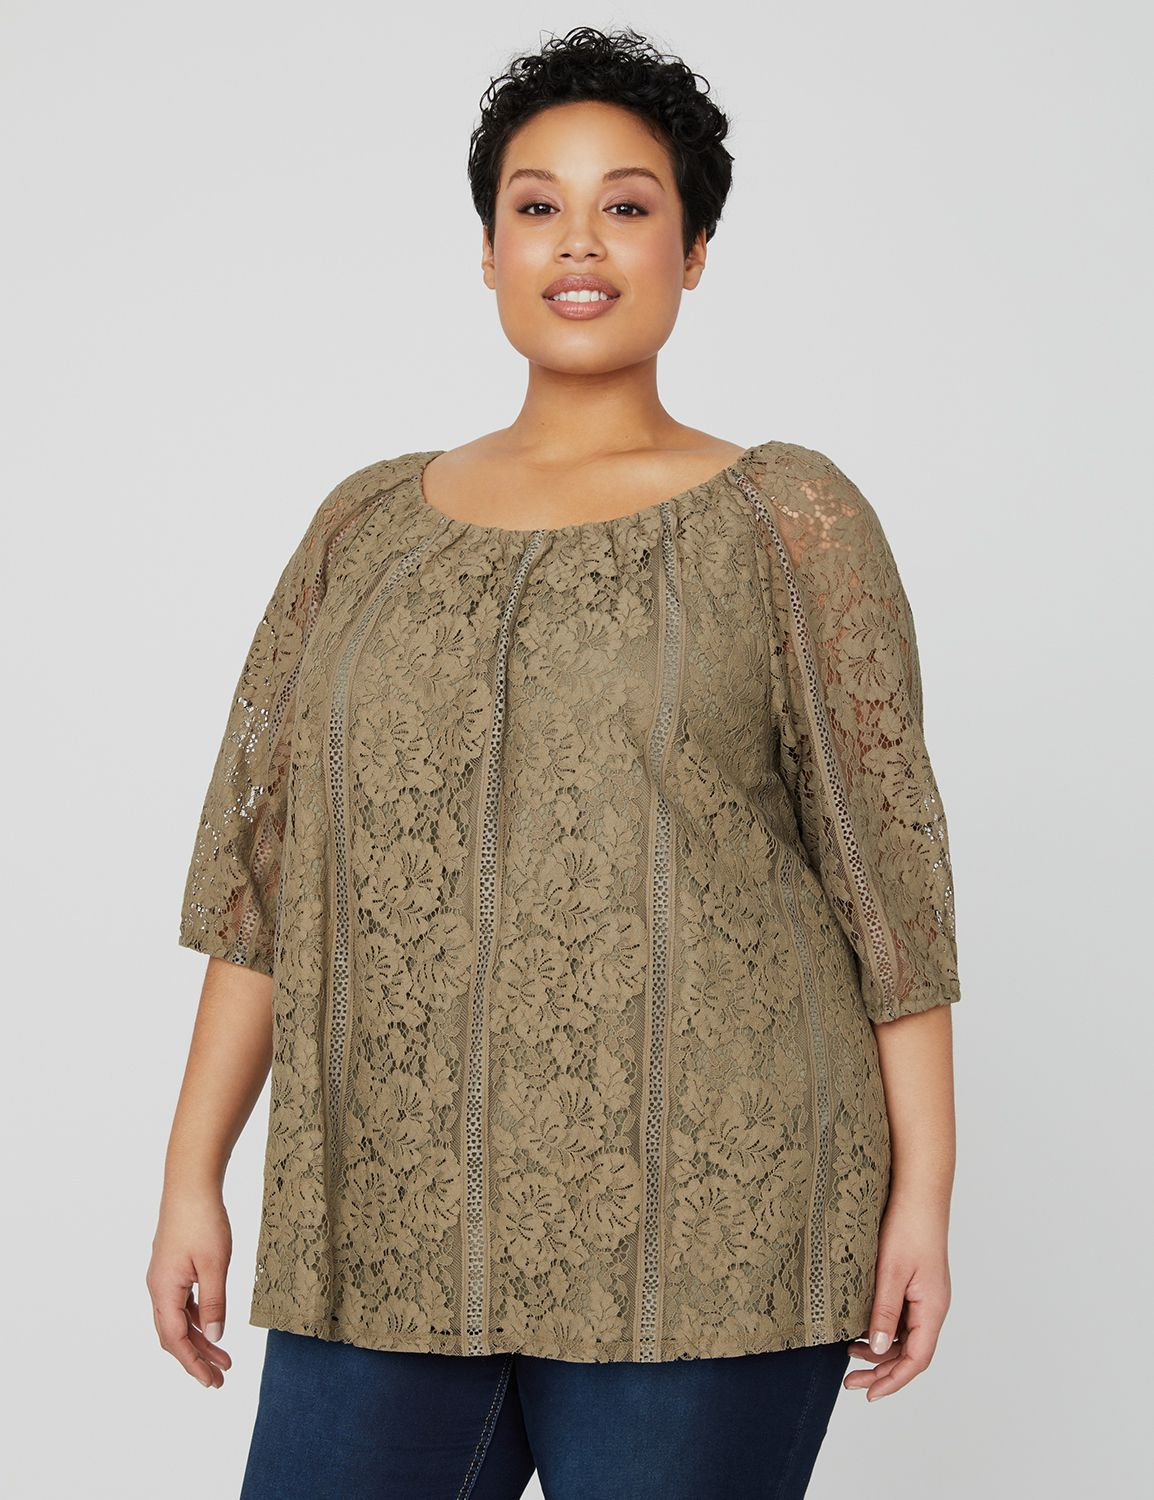 Vista Cove Lace Top 1089762 Nuance Crochet Lace Top MP-300098888